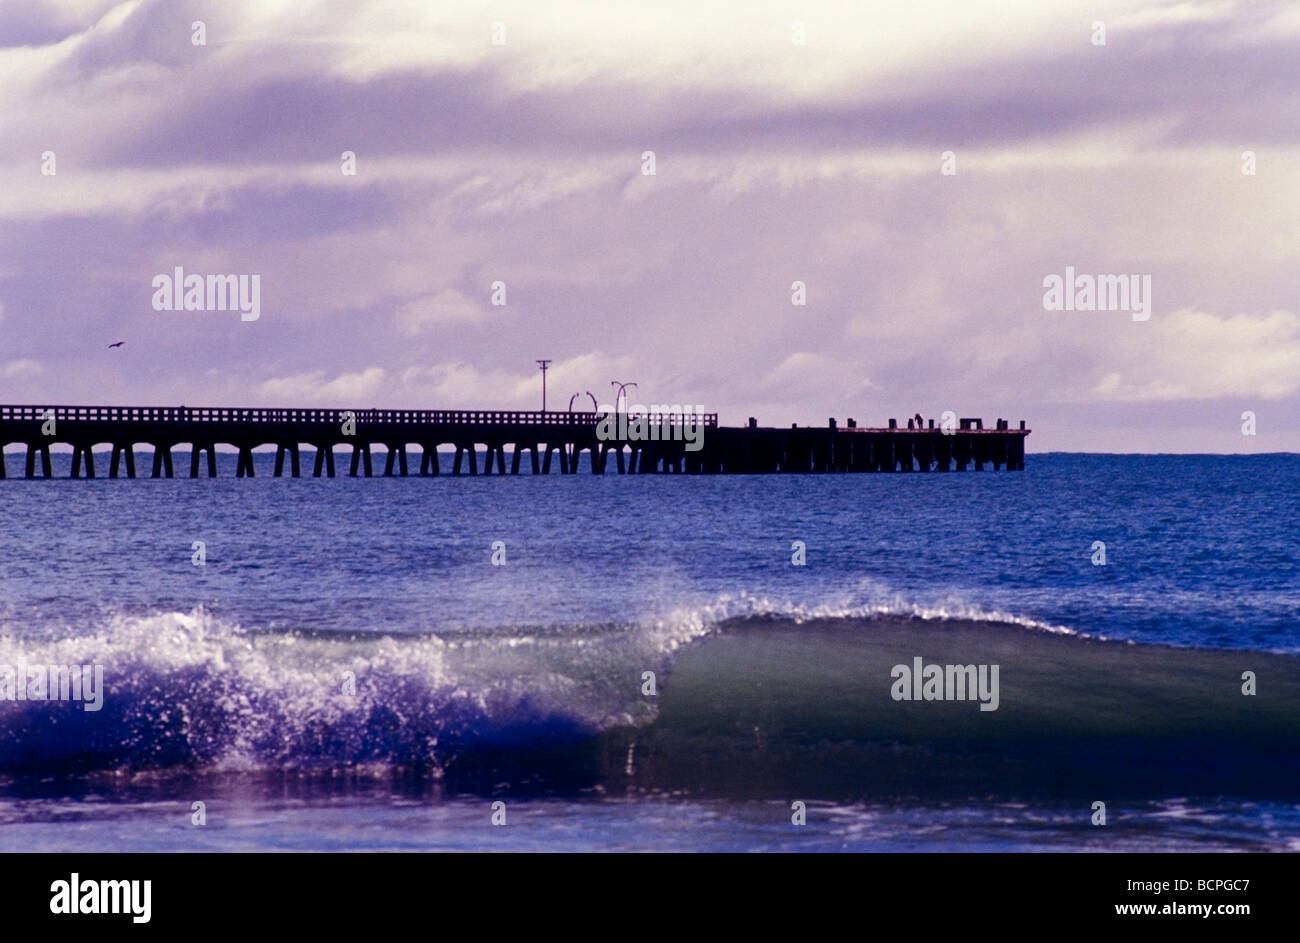 Tolaga Bay with wharf with small wave breaking on the beach in the foreground East Coast New Zealand - Stock Image